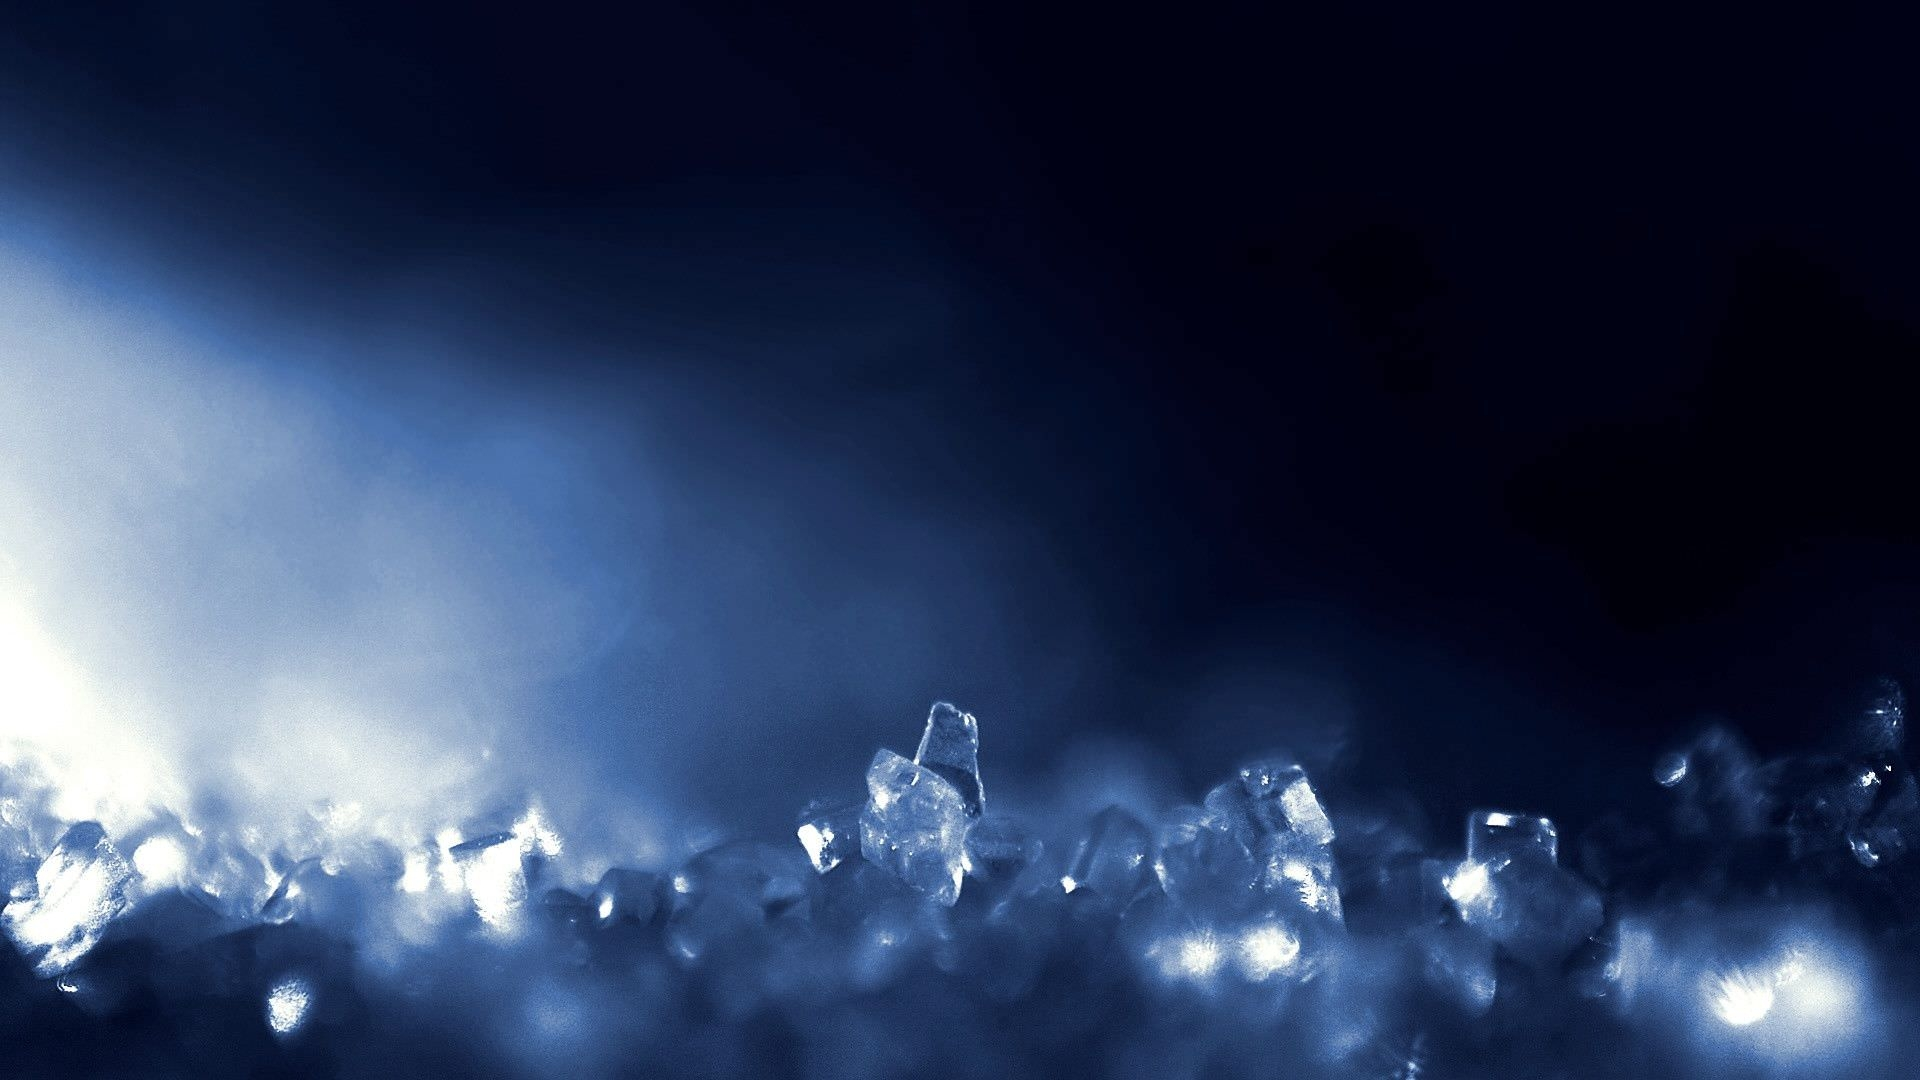 Dark Blue Crystal Widescren Background